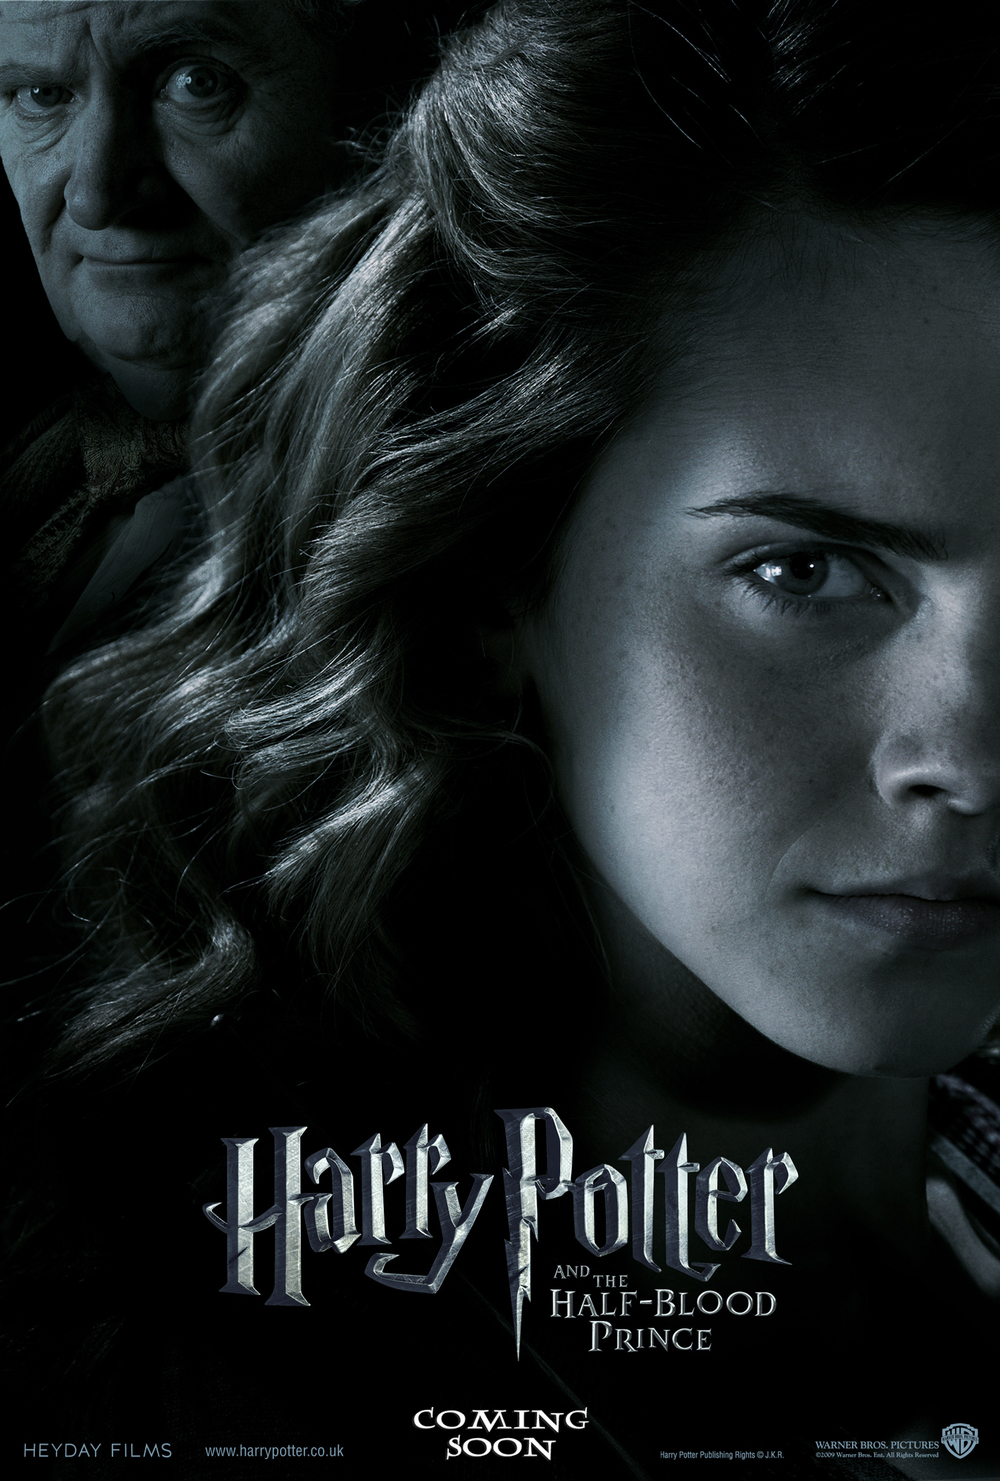 "<a href=""http://www.totallyemmawatson.com/gallery/acting-career/harry-potter-and-the-half-blood-prince/posters"">Posters</a>"